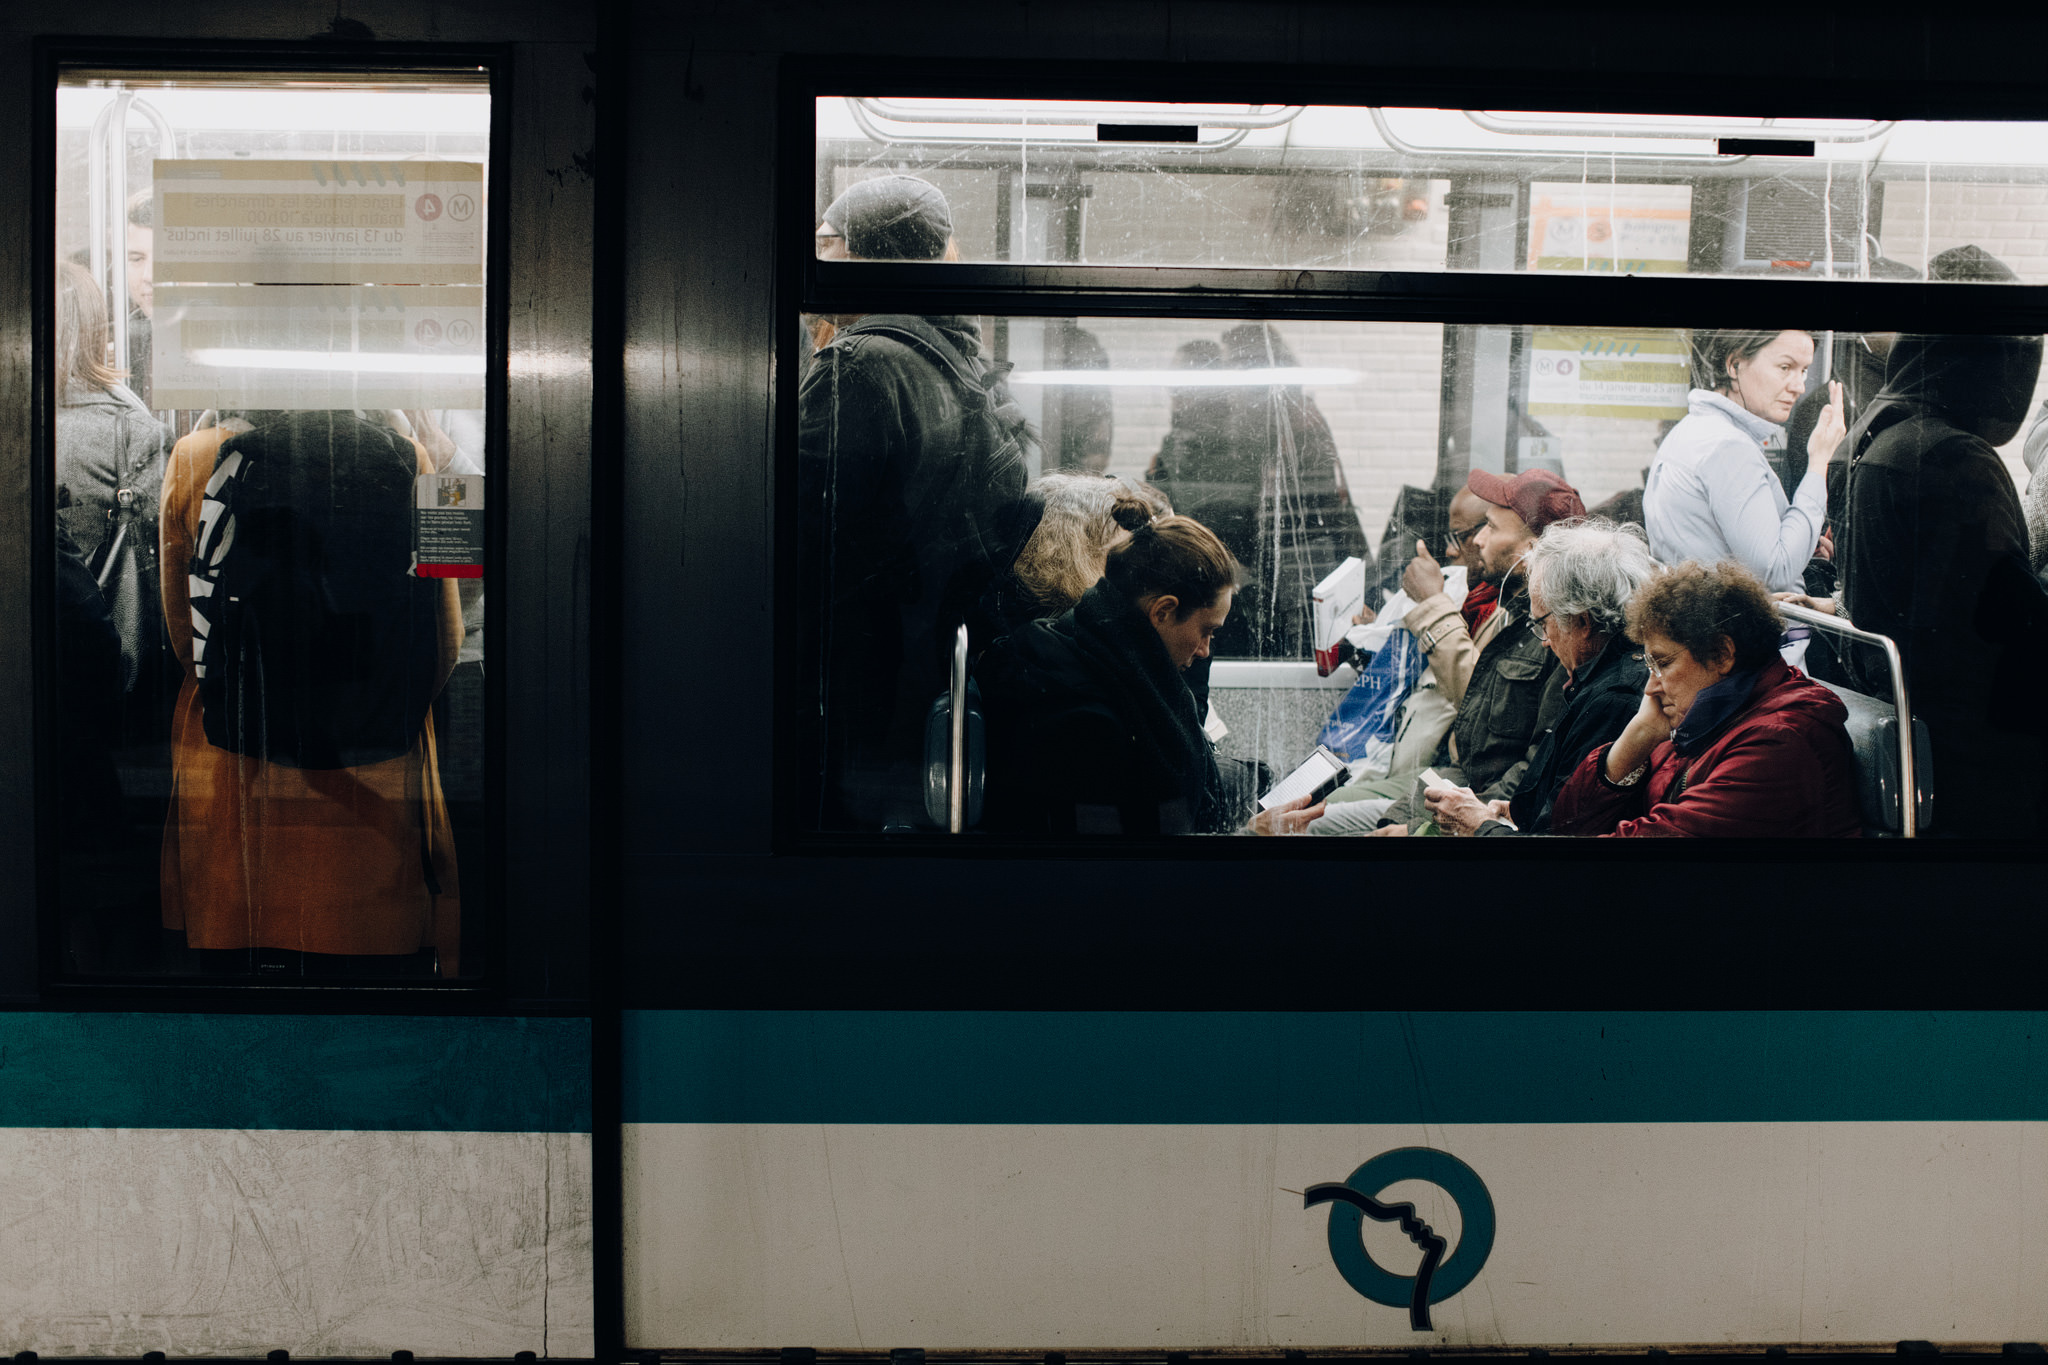 People sitting in metro in Paris, France